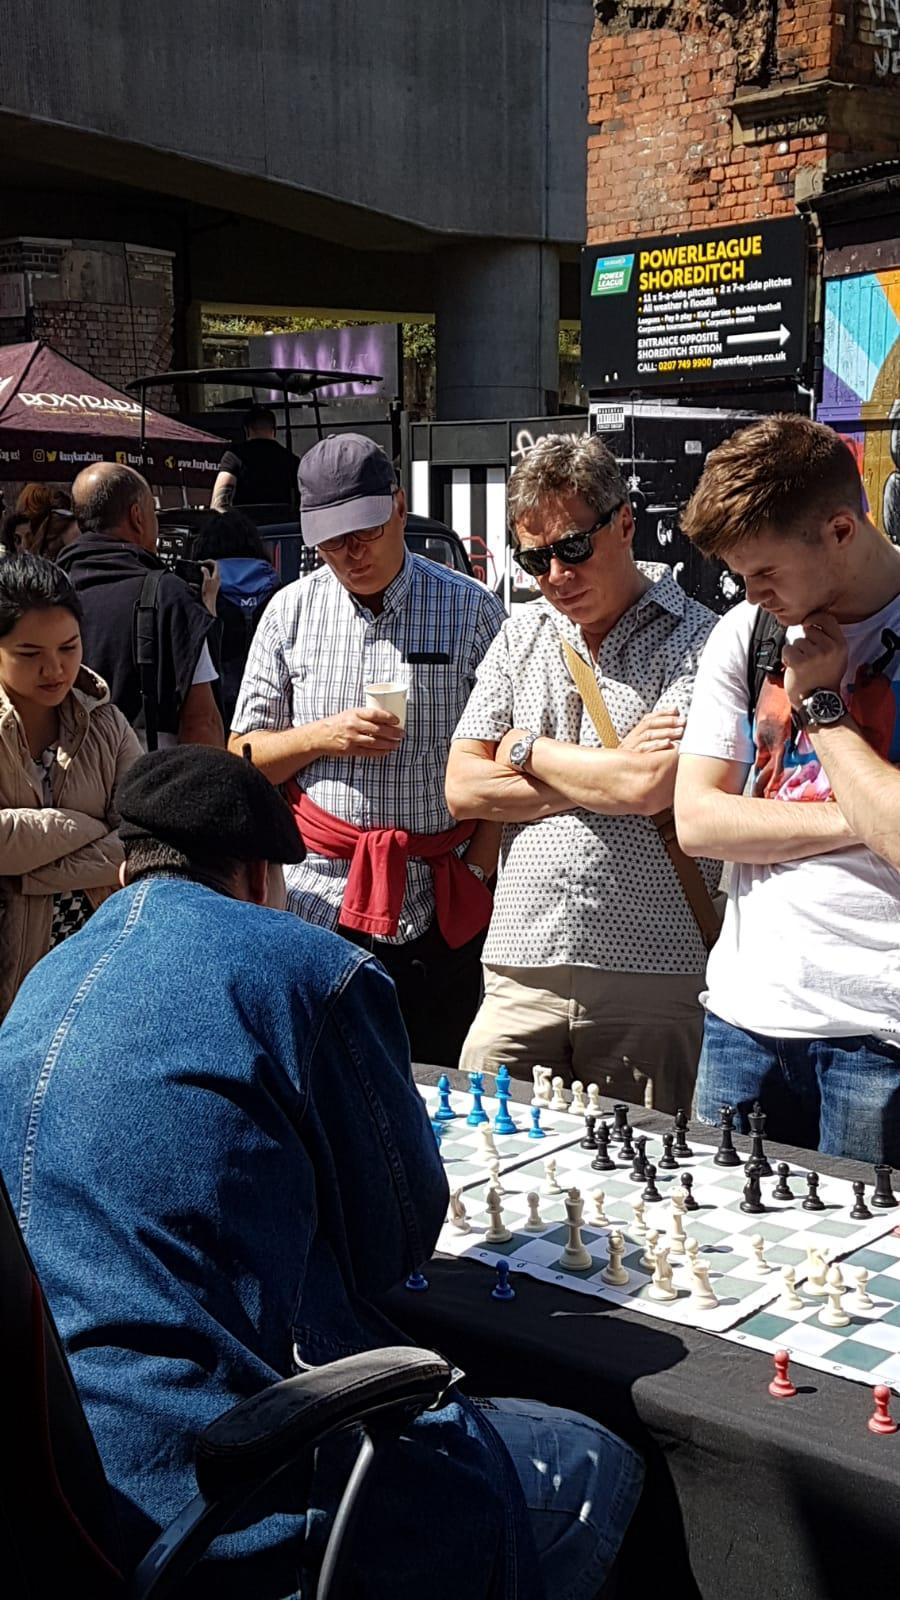 C:\Users\Clive\Documents\clive\chess\brick lane.jpg